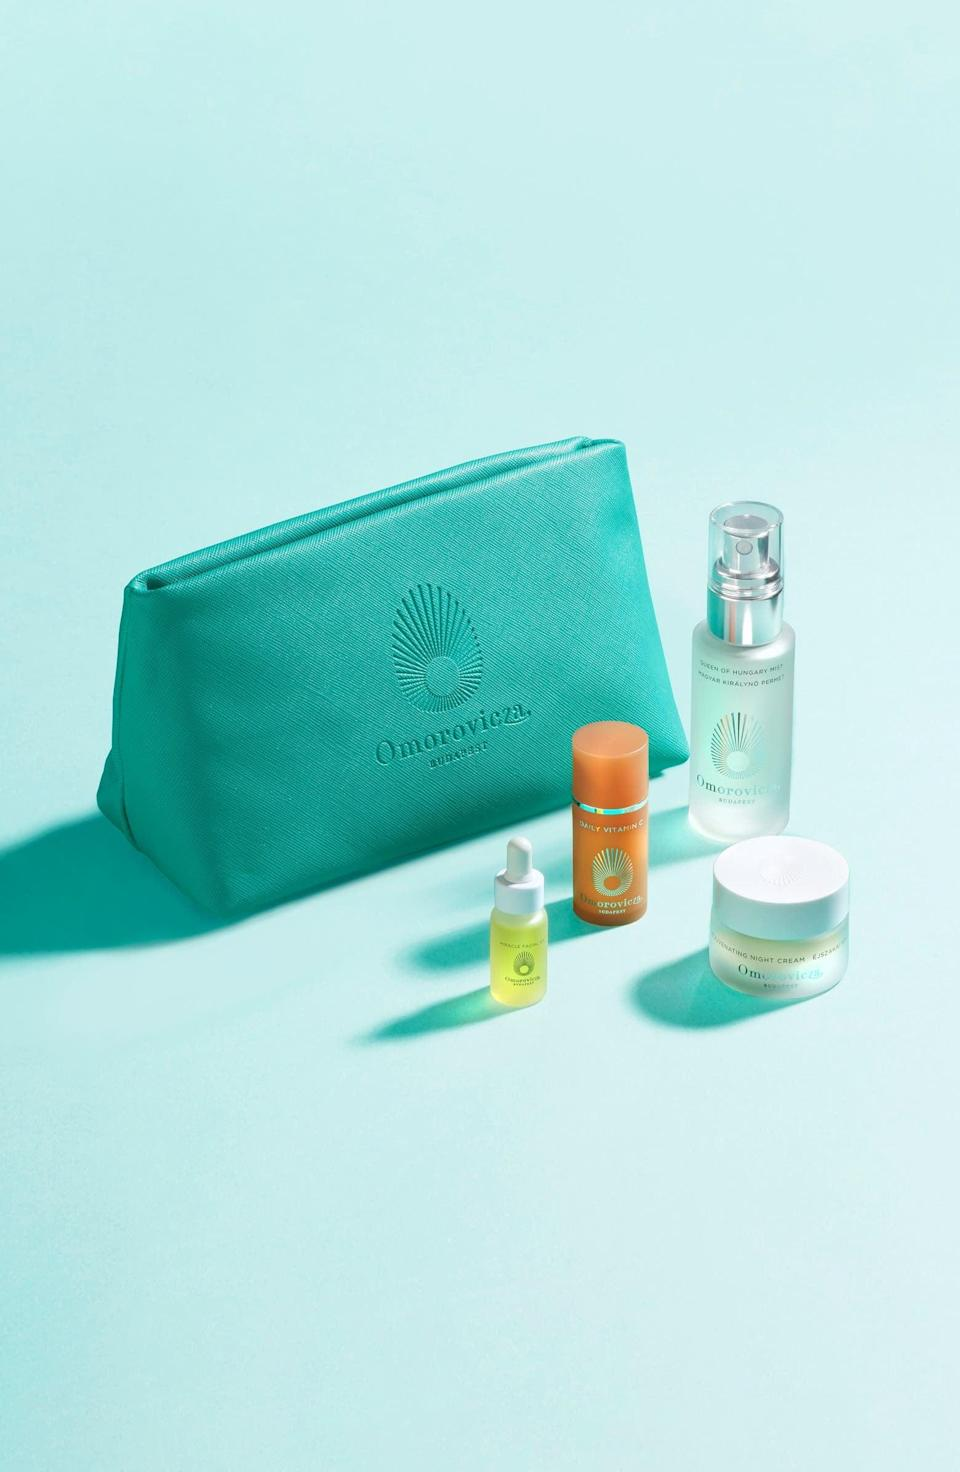 <p><span>Omorovicza Travel Size Queen of Hungary Mist Set</span> ($62, originally $83)</p>